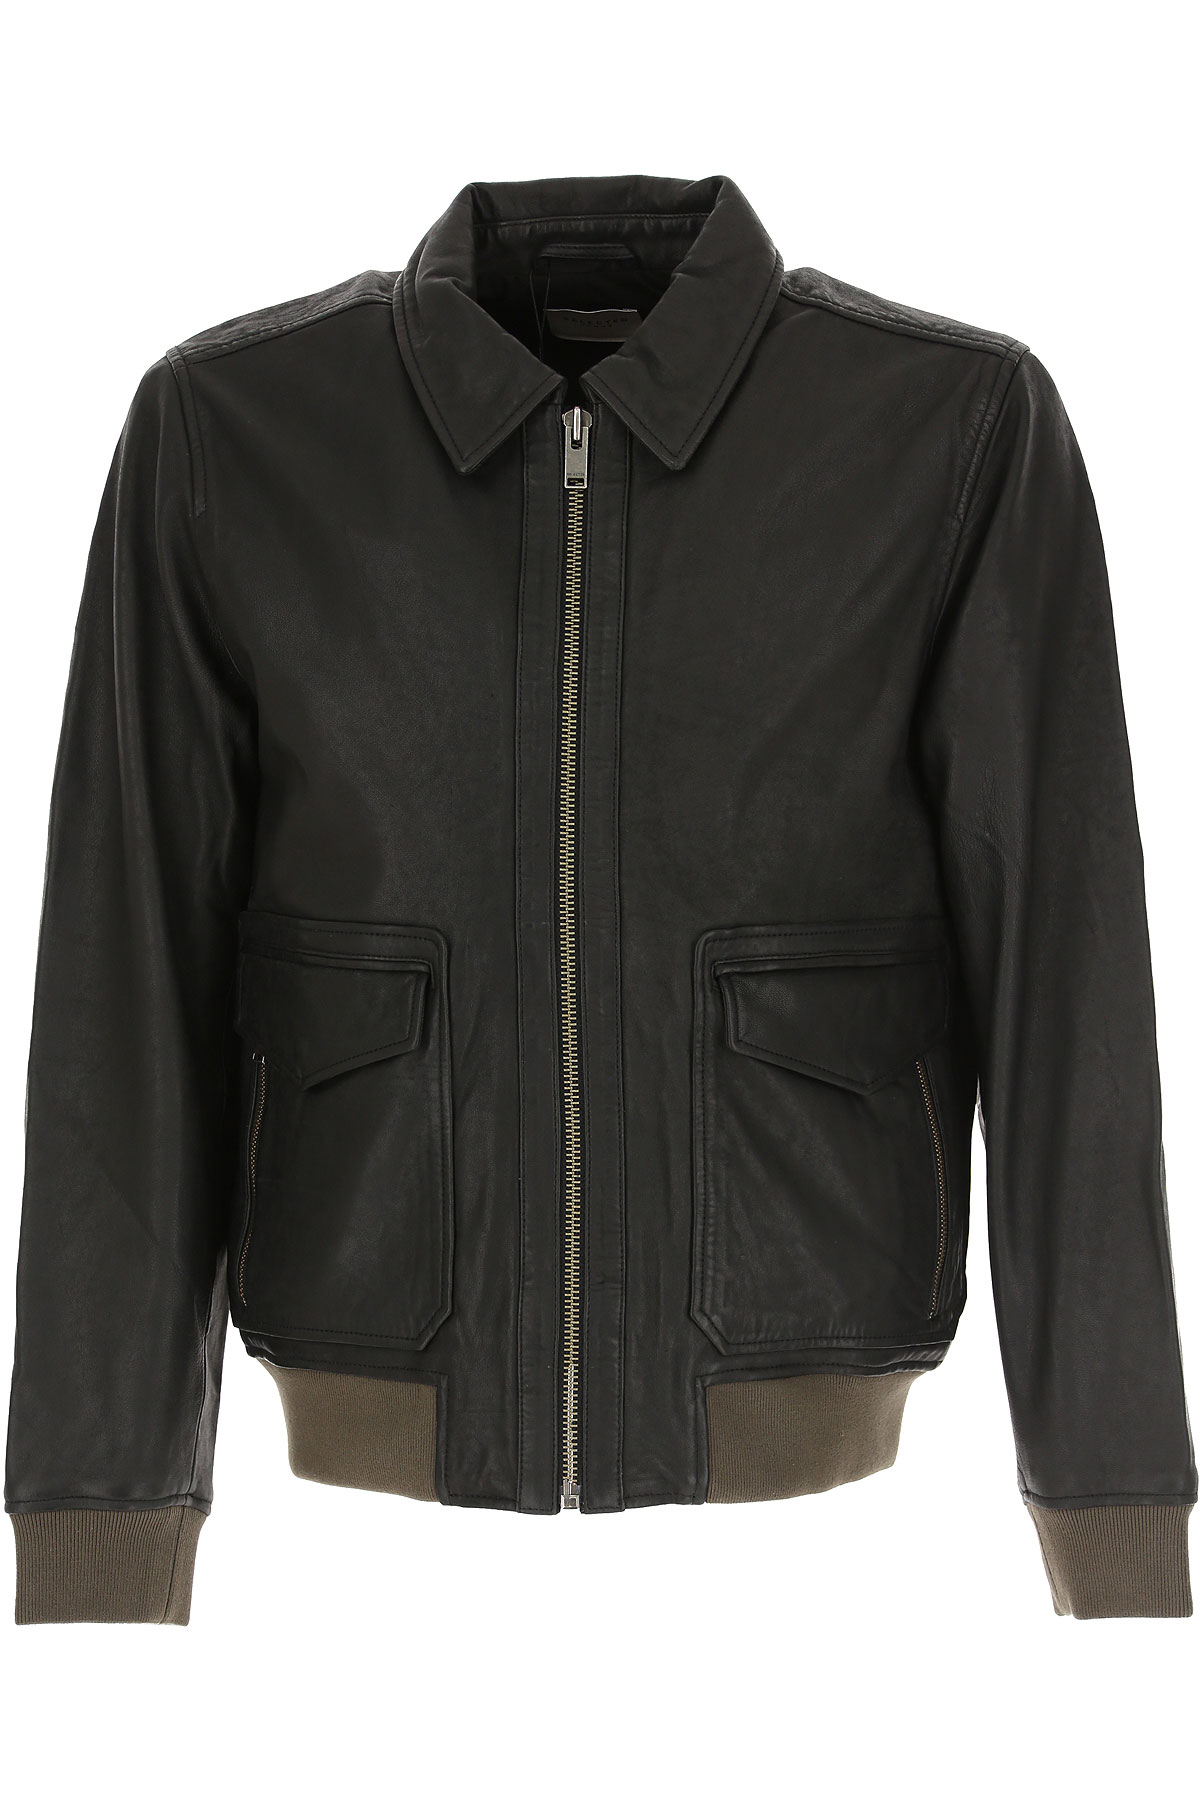 Selected Leather Jacket for Men On Sale, Black, Leather, 2019, L XL XXL